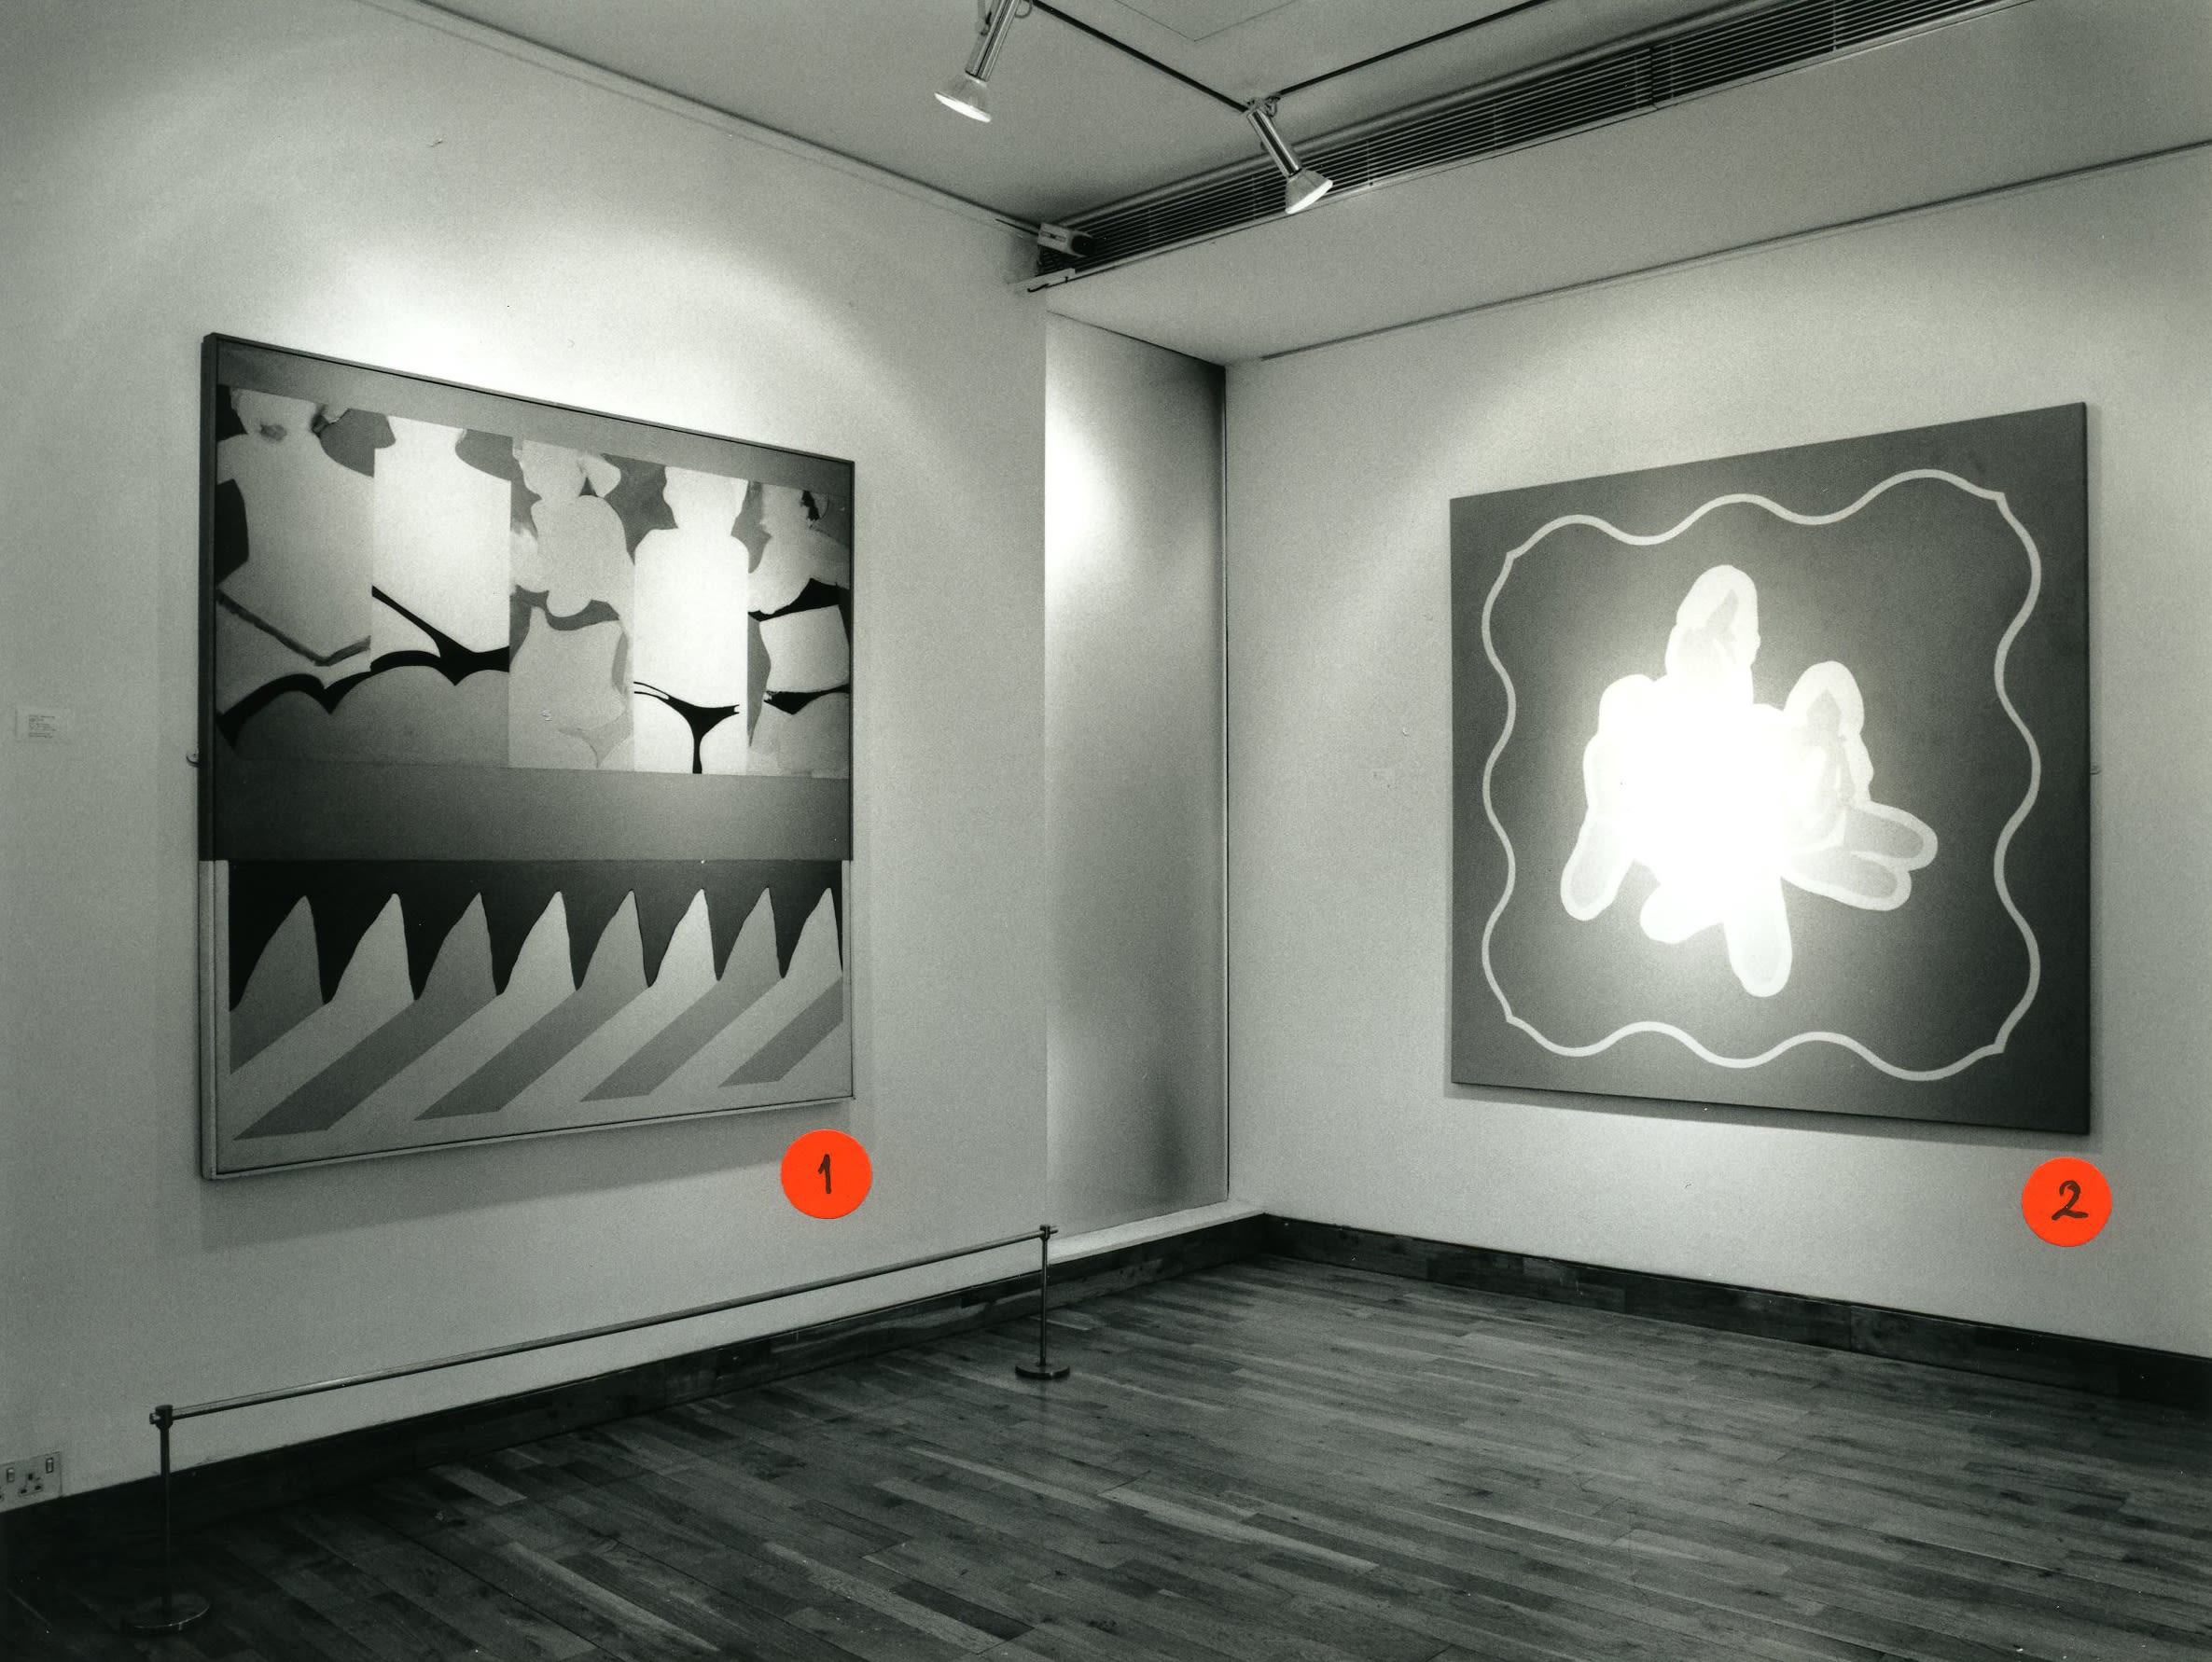 """<span class=""""link fancybox-details-link""""><a href=""""/exhibitions/156/works/image_standalone674/"""">View Detail Page</a></span><p>ANTONY DONALDSON 